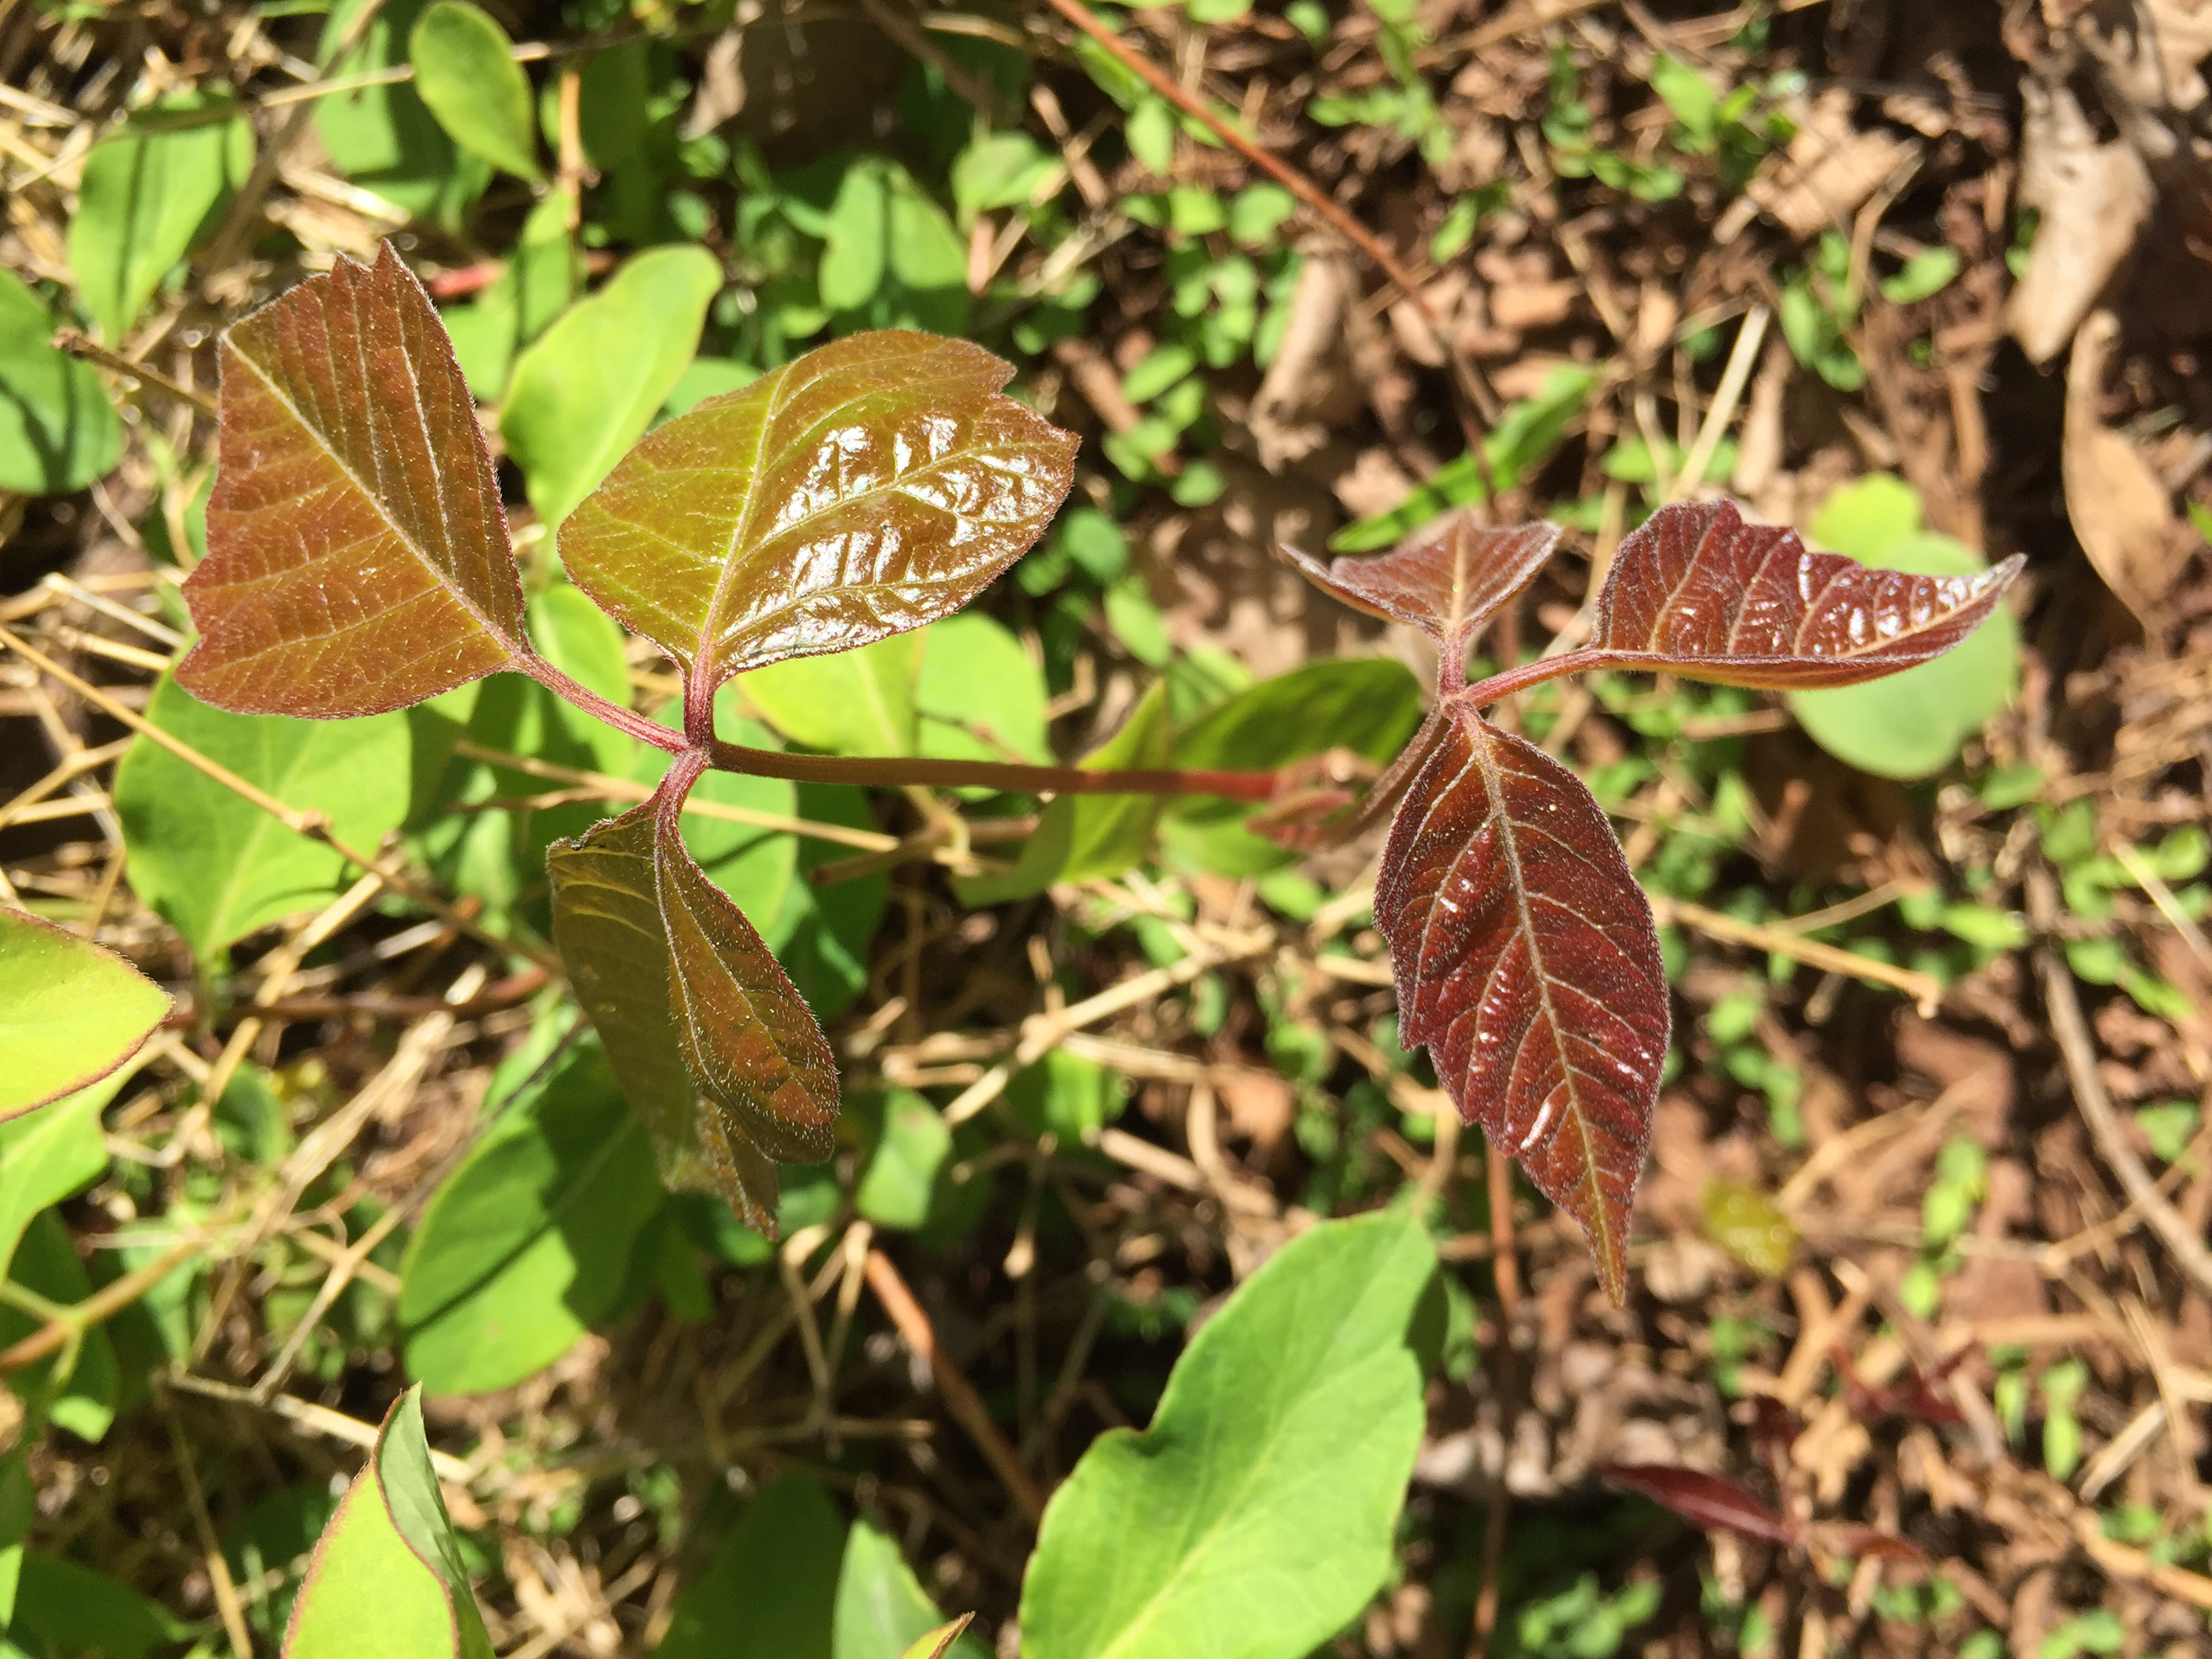 File:2016-04-15 16 33 20 Young foliage of Poison Ivy in ... - photo#27